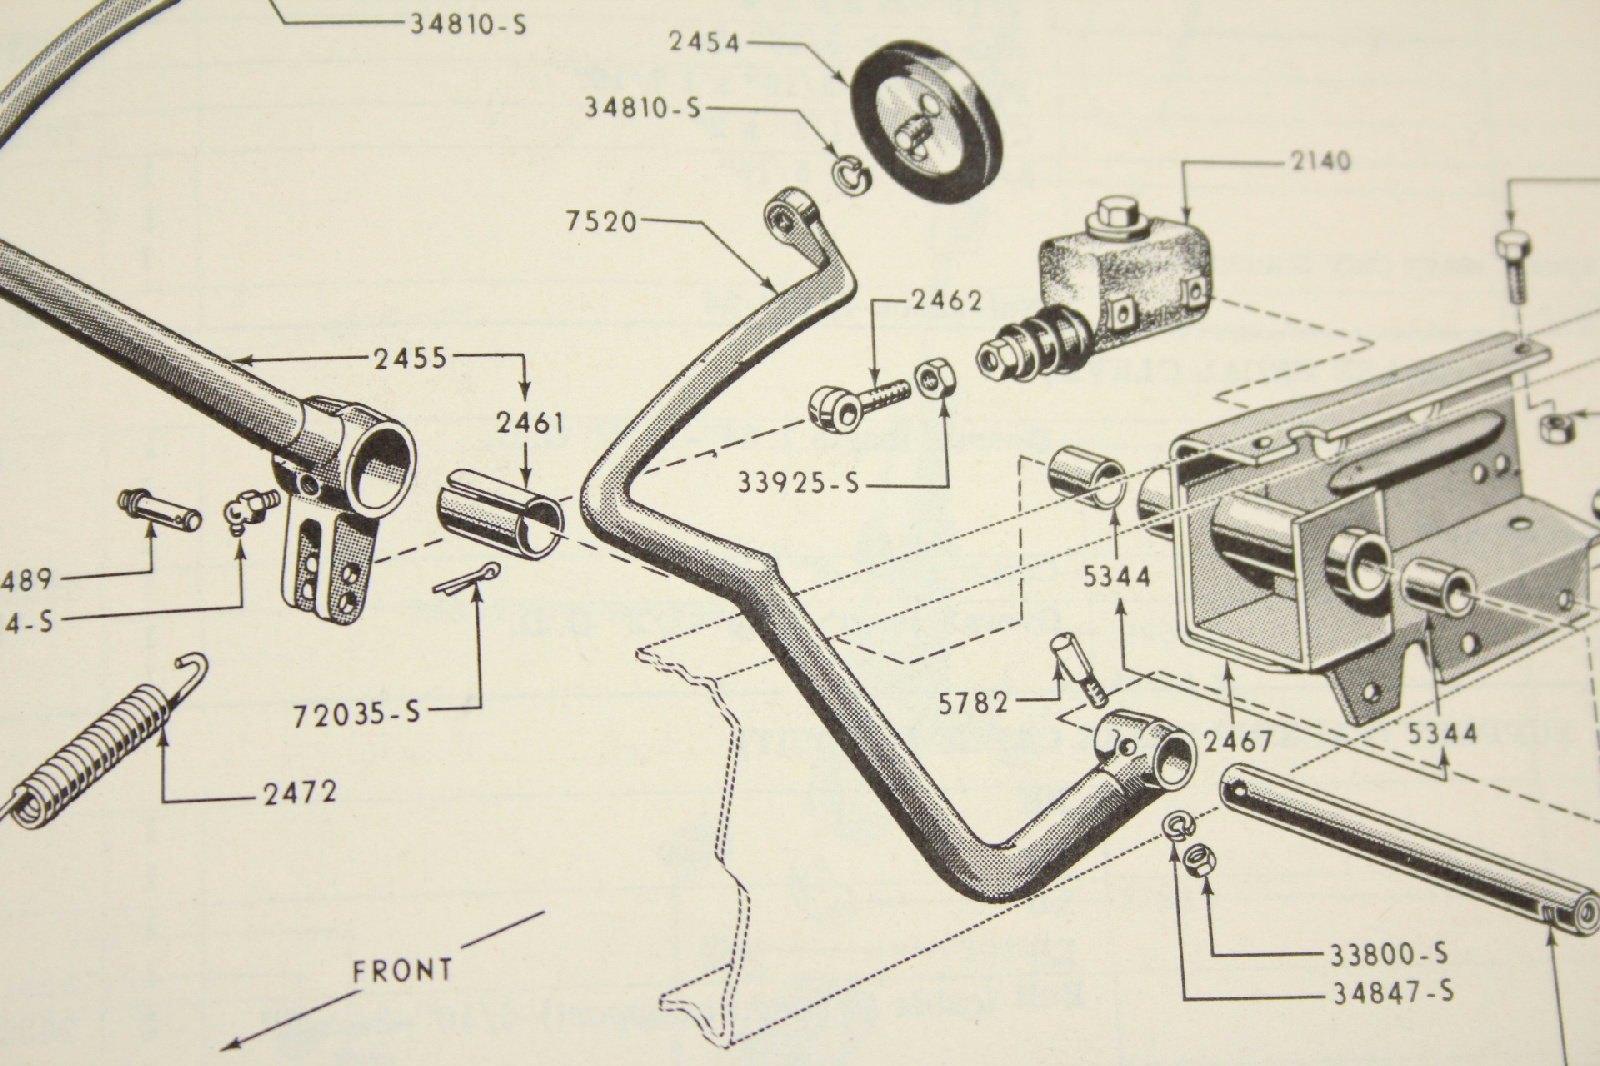 Ford motor co chassis parts accessories catalogue for 1948 for Ford motor company description